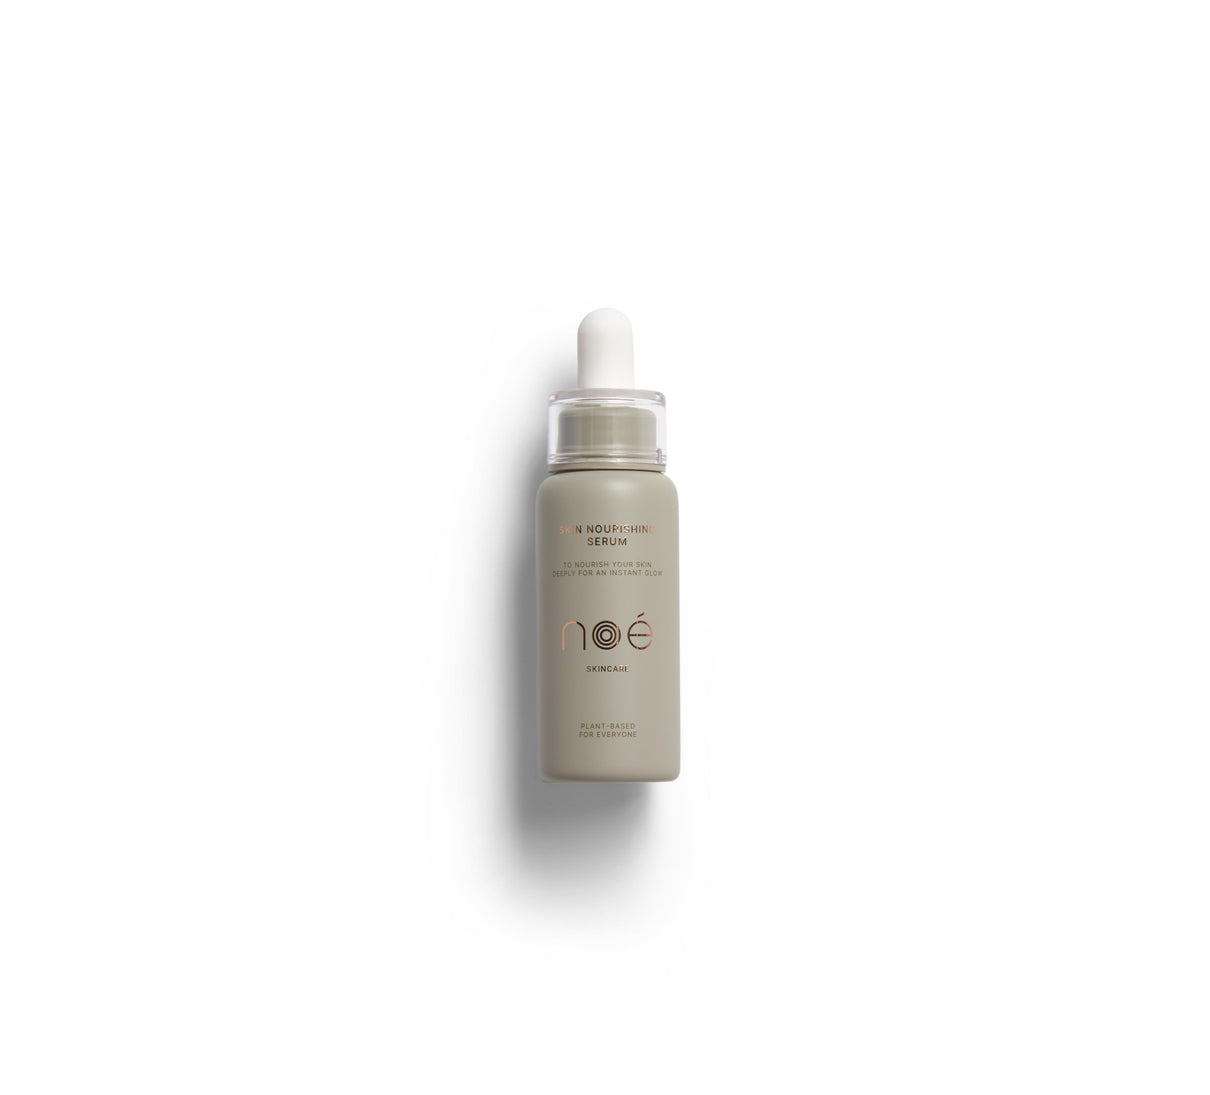 NOÉ SKIN NOURISHING SERUM